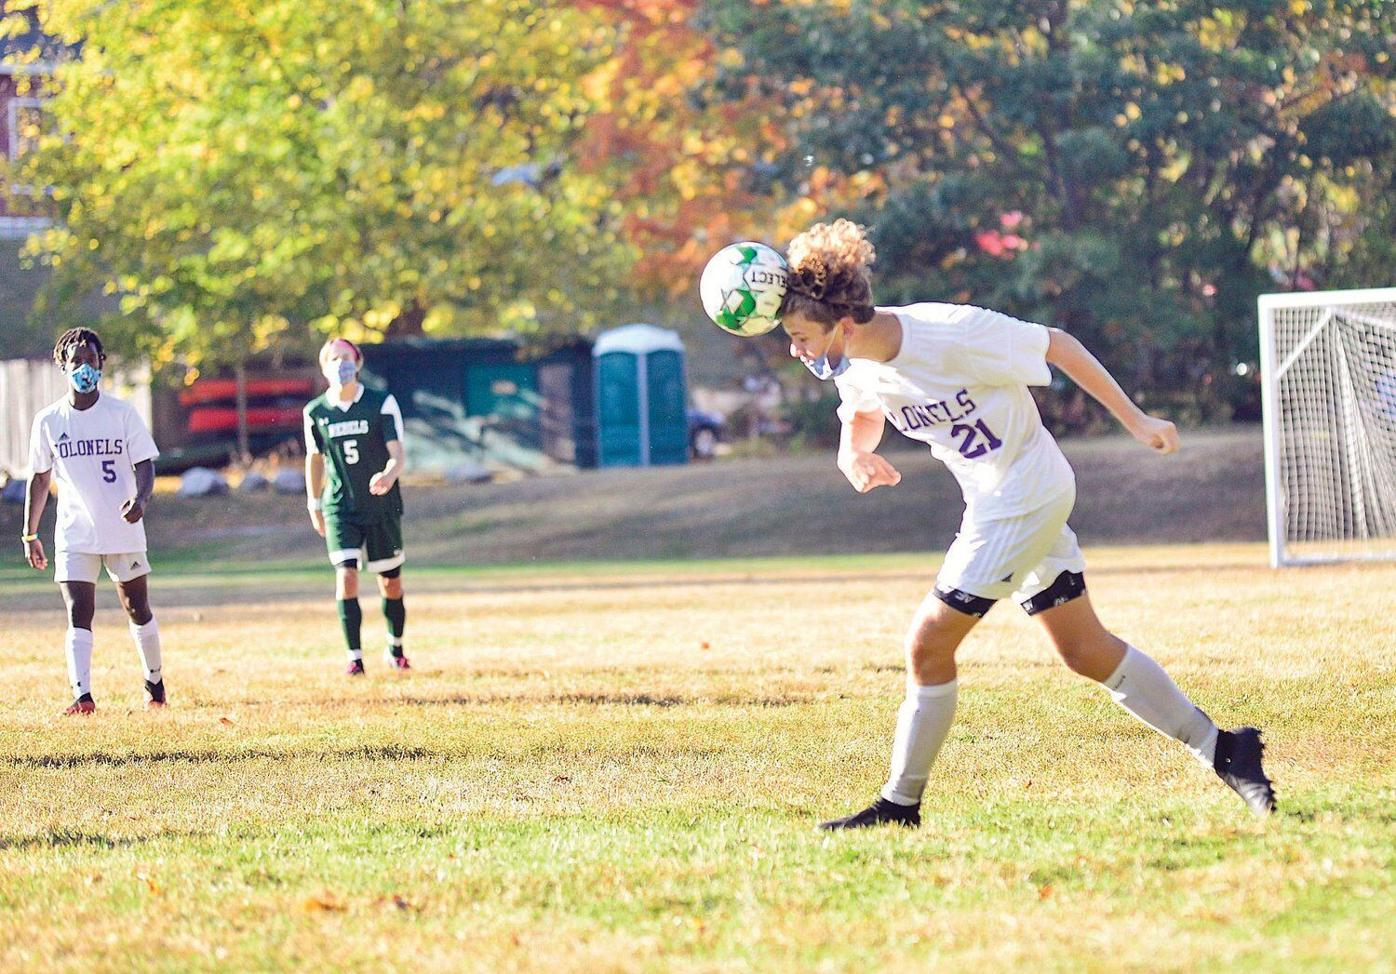 Colonel boys rout Rebels